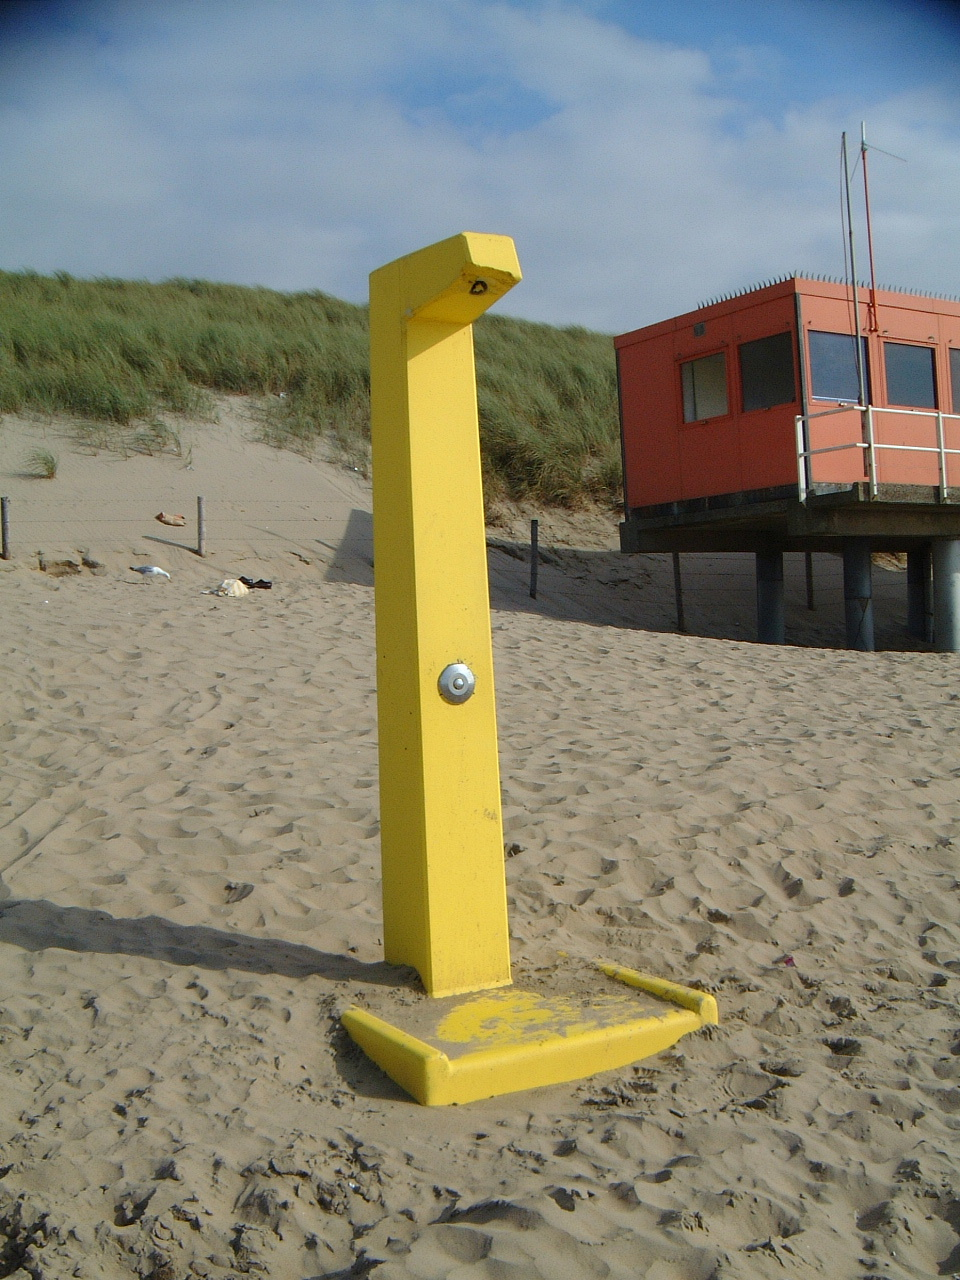 maartent yellow pole on beach with no clear purpose